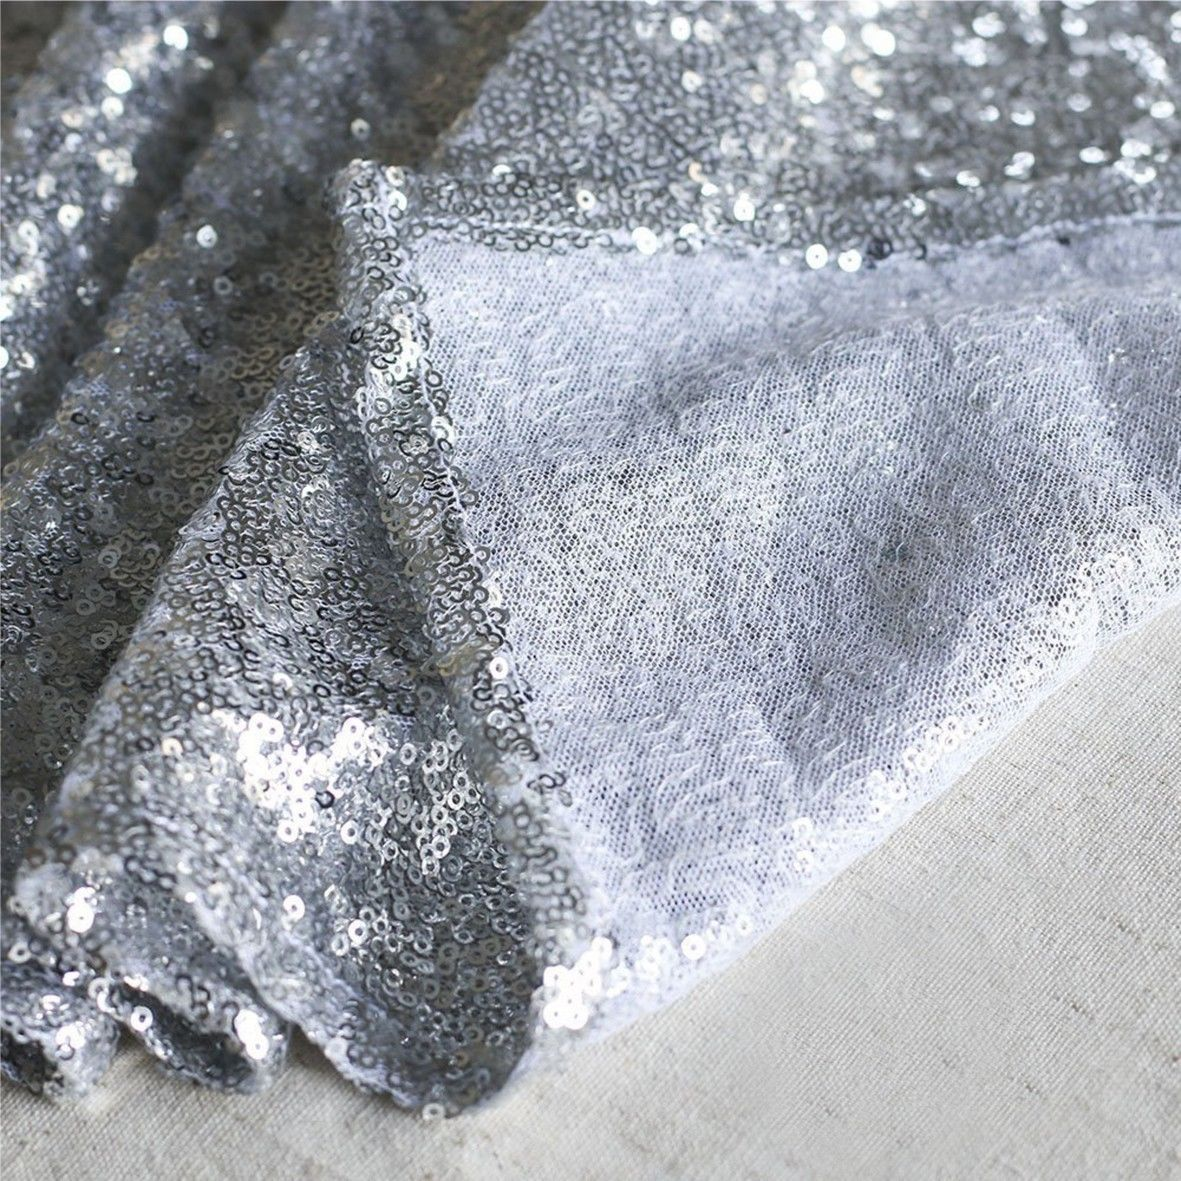 Sequin-Table-Runner-Tablecloth-Xmas-Party-Wedding-Decorations-12-034-x72-039-039-108-034-118-034 thumbnail 23